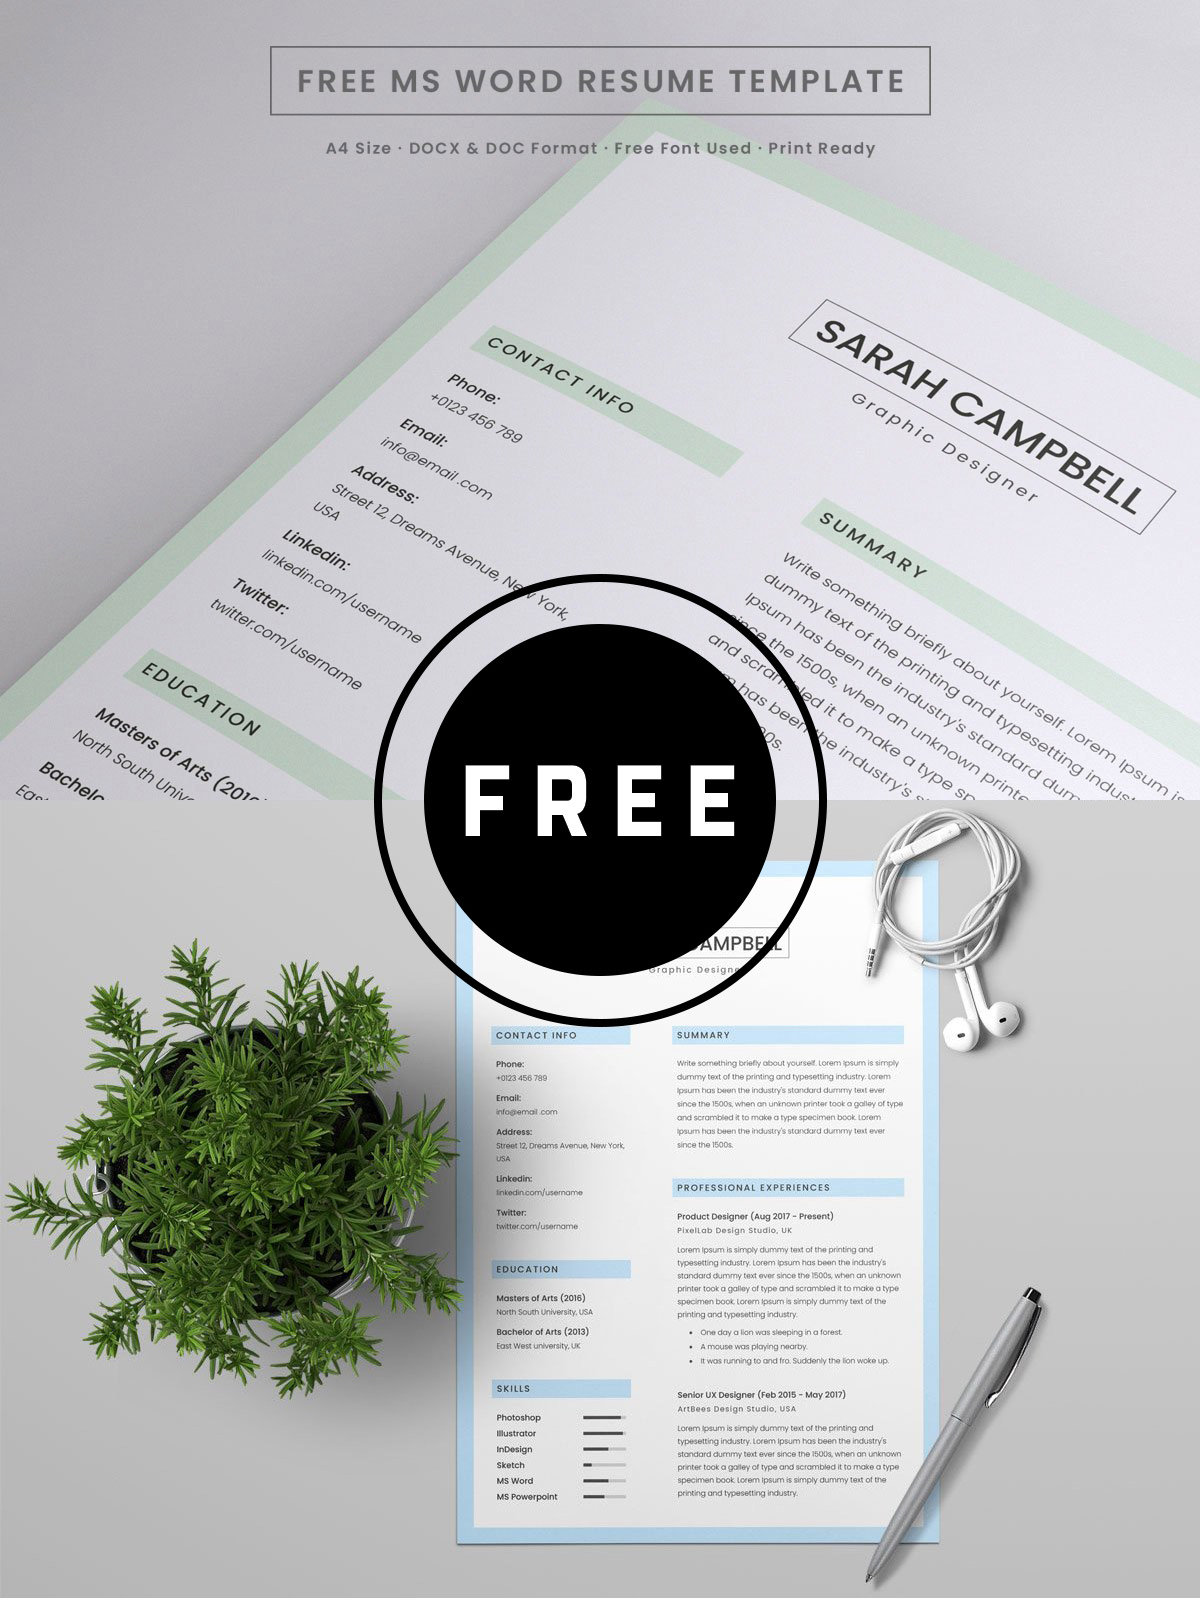 Free Resume Word Template 98 Awesome Free Resume Templates For 2019 Creativetacos